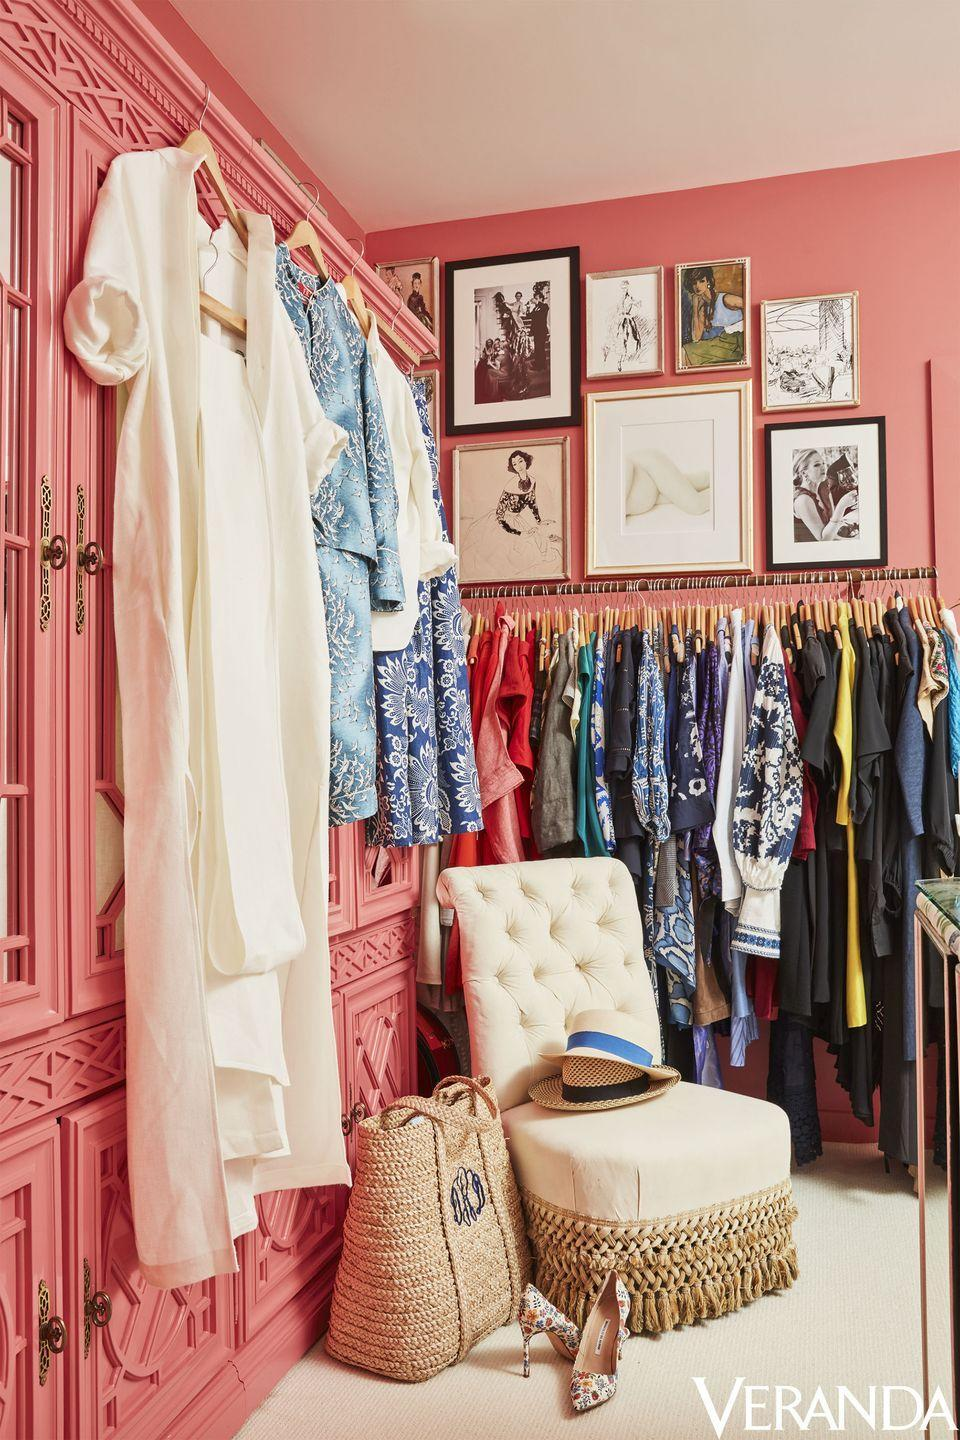 """<p>What's more mood-boosting than painting a room the color of your favorite lipstick shade? That's just what tastemaker and author <a href=""""https://www.veranda.com/decorating-ideas/a13121154/danielle-rollins-atlanta-home/"""" rel=""""nofollow noopener"""" target=""""_blank"""" data-ylk=""""slk:Danielle Rollins"""" class=""""link rapid-noclick-resp"""">Danielle Rollins</a> did in her vibrant dressing room. Pink not only symbolizes femininity, but it can spark creativity, inspire joyfulness, and offer a refresh. </p>"""